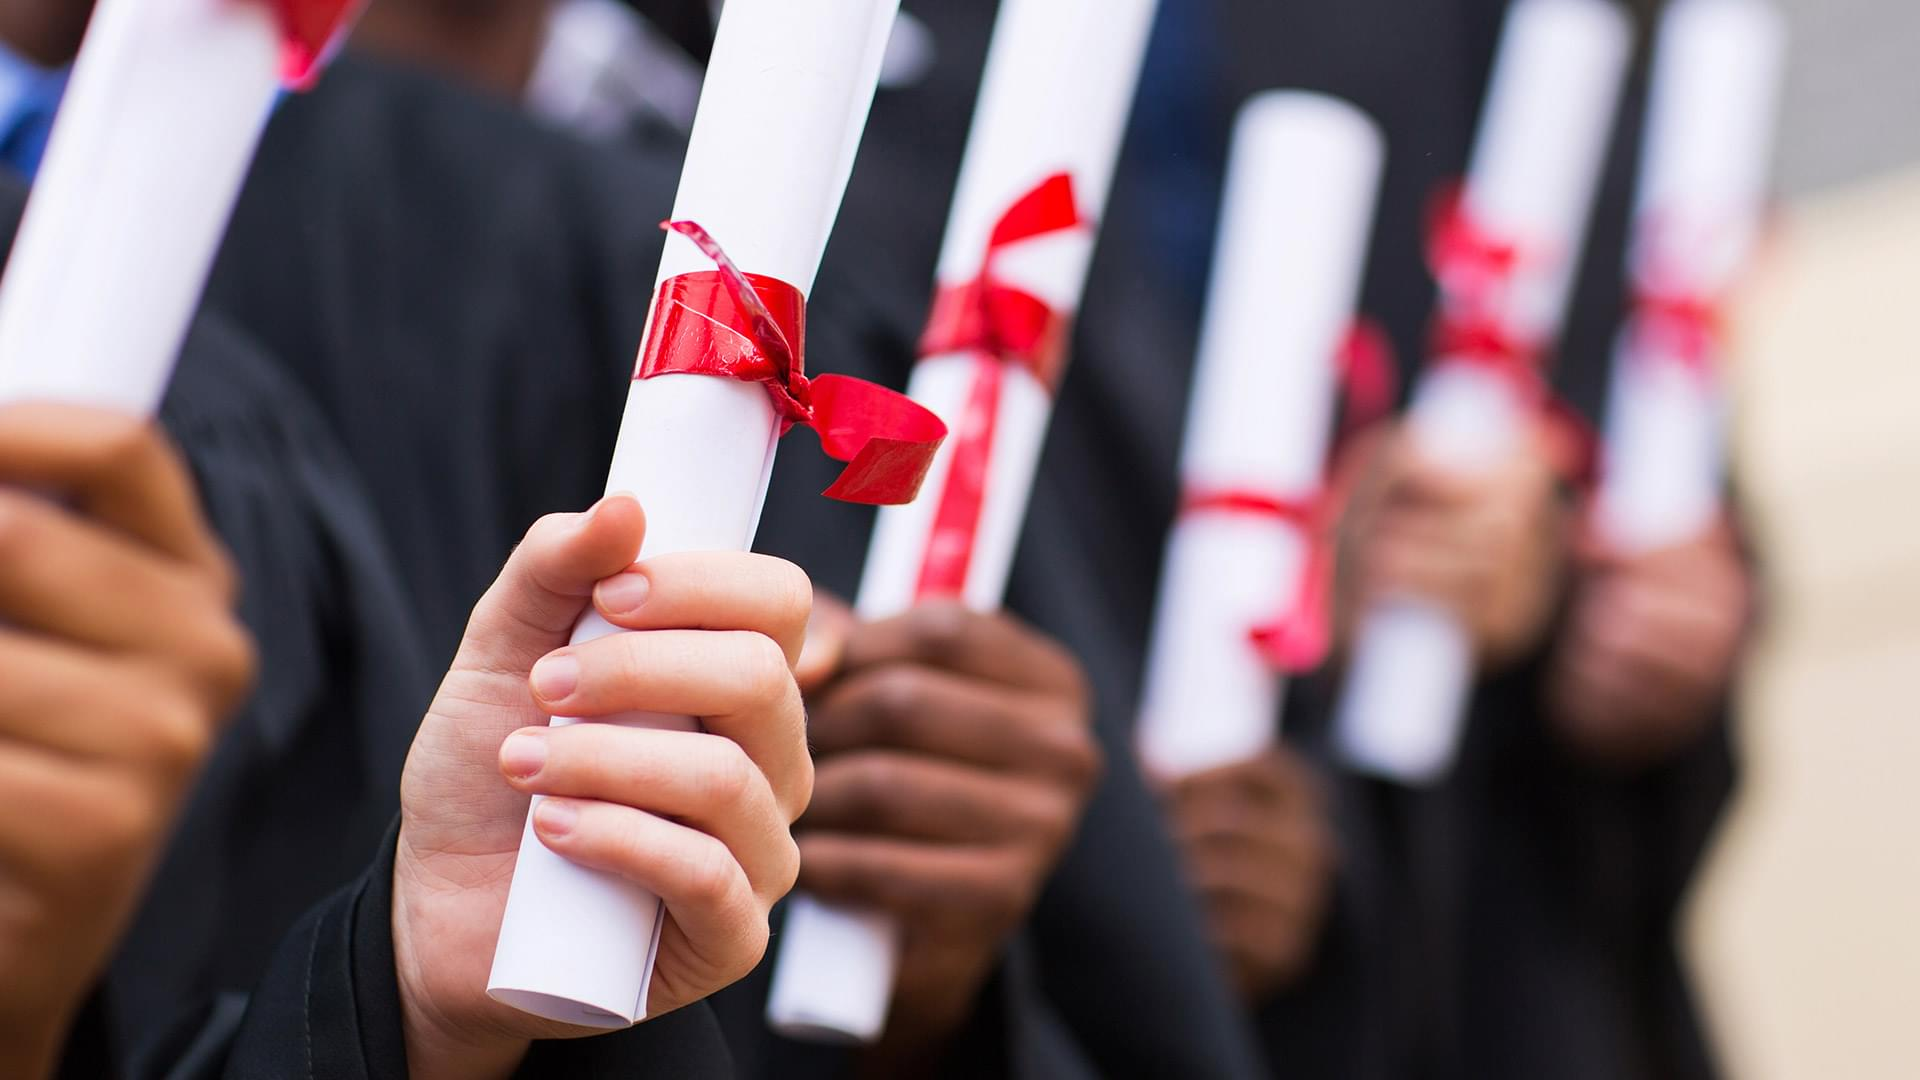 Education Verification: The Real Problem of Fake Degrees